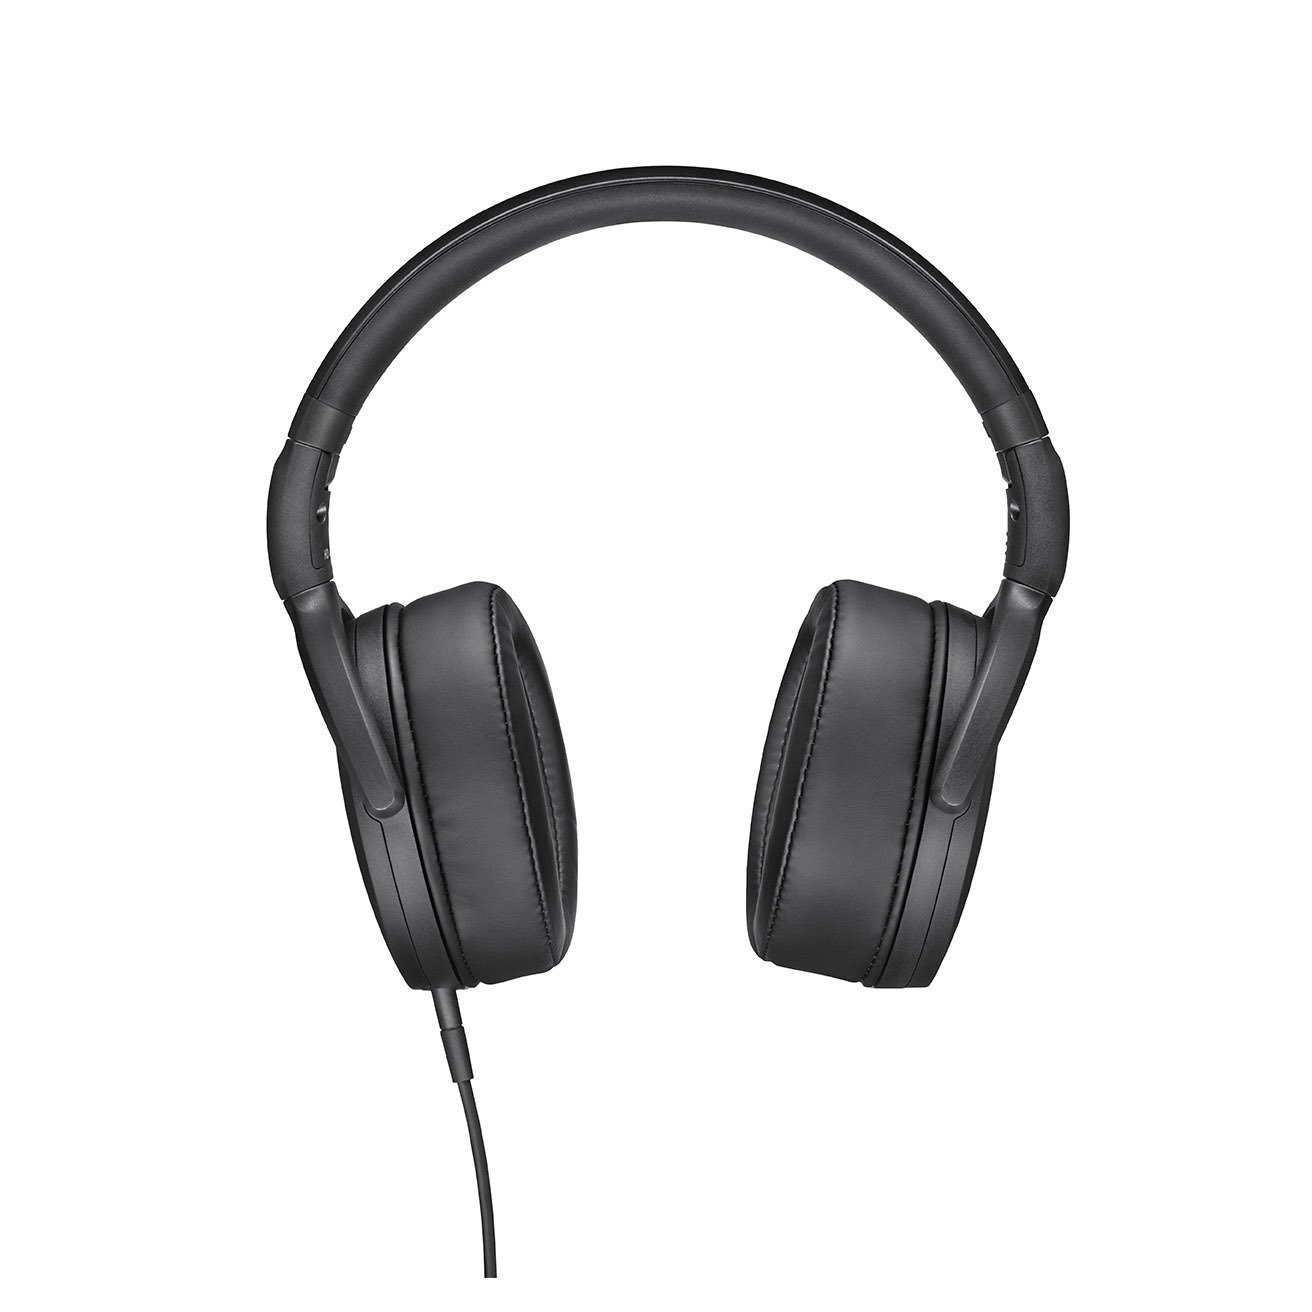 Sennheiser HD 400S Wired Over-Ear Headphones with Mic - Black image